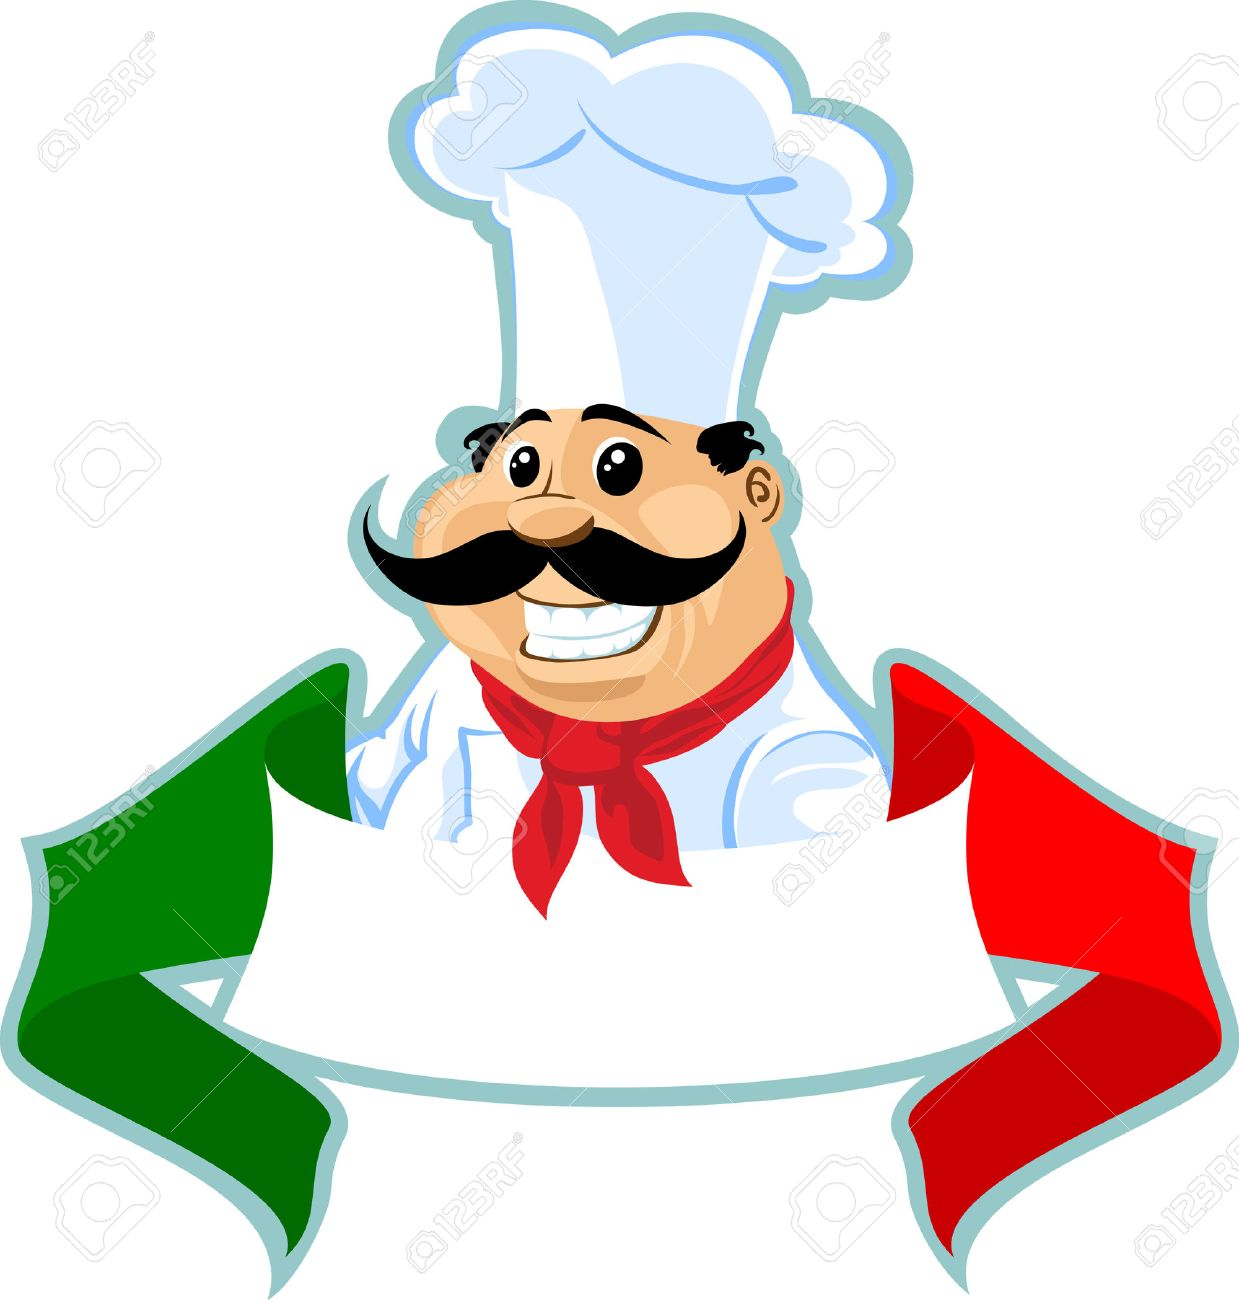 11 811 italian chef cliparts stock vector and royalty free italian rh 123rf com italian chef clipart free Italian Chef Hat